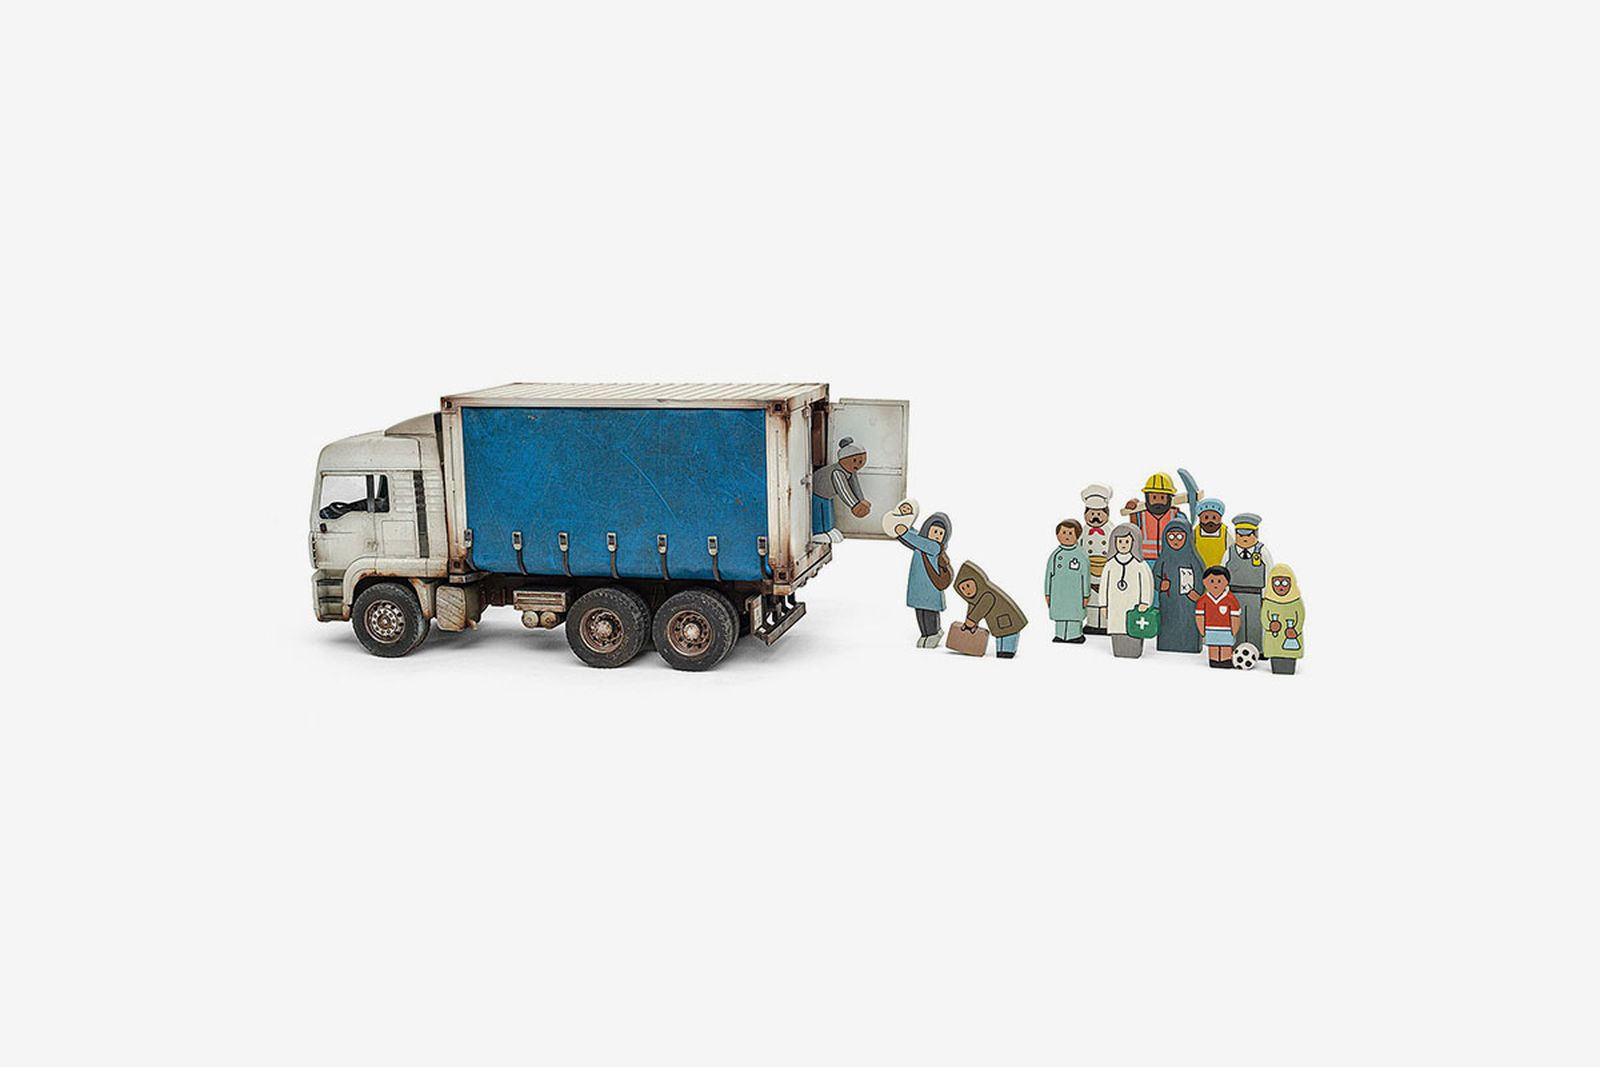 Banksy Gross Domestic Product truck